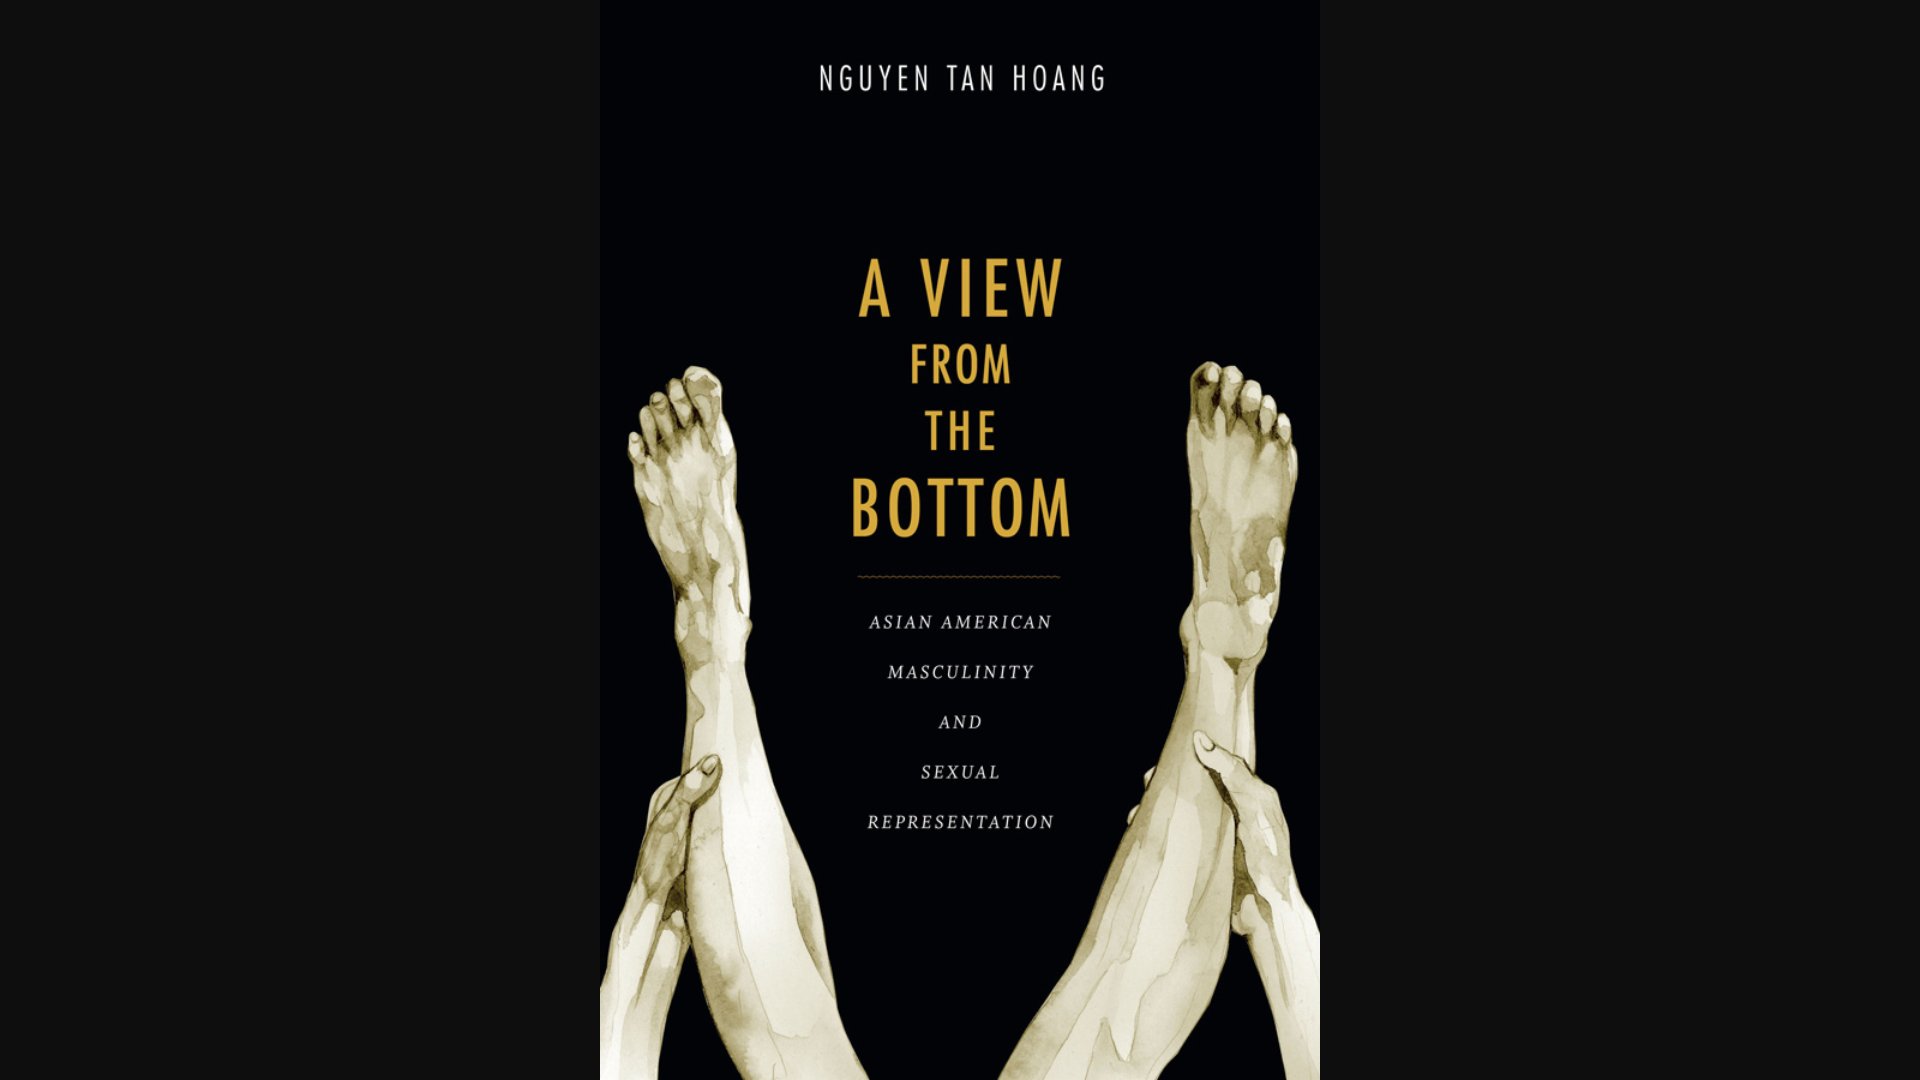 a-view-from-the-bottom-2014-by-nguyen-tan-hoang